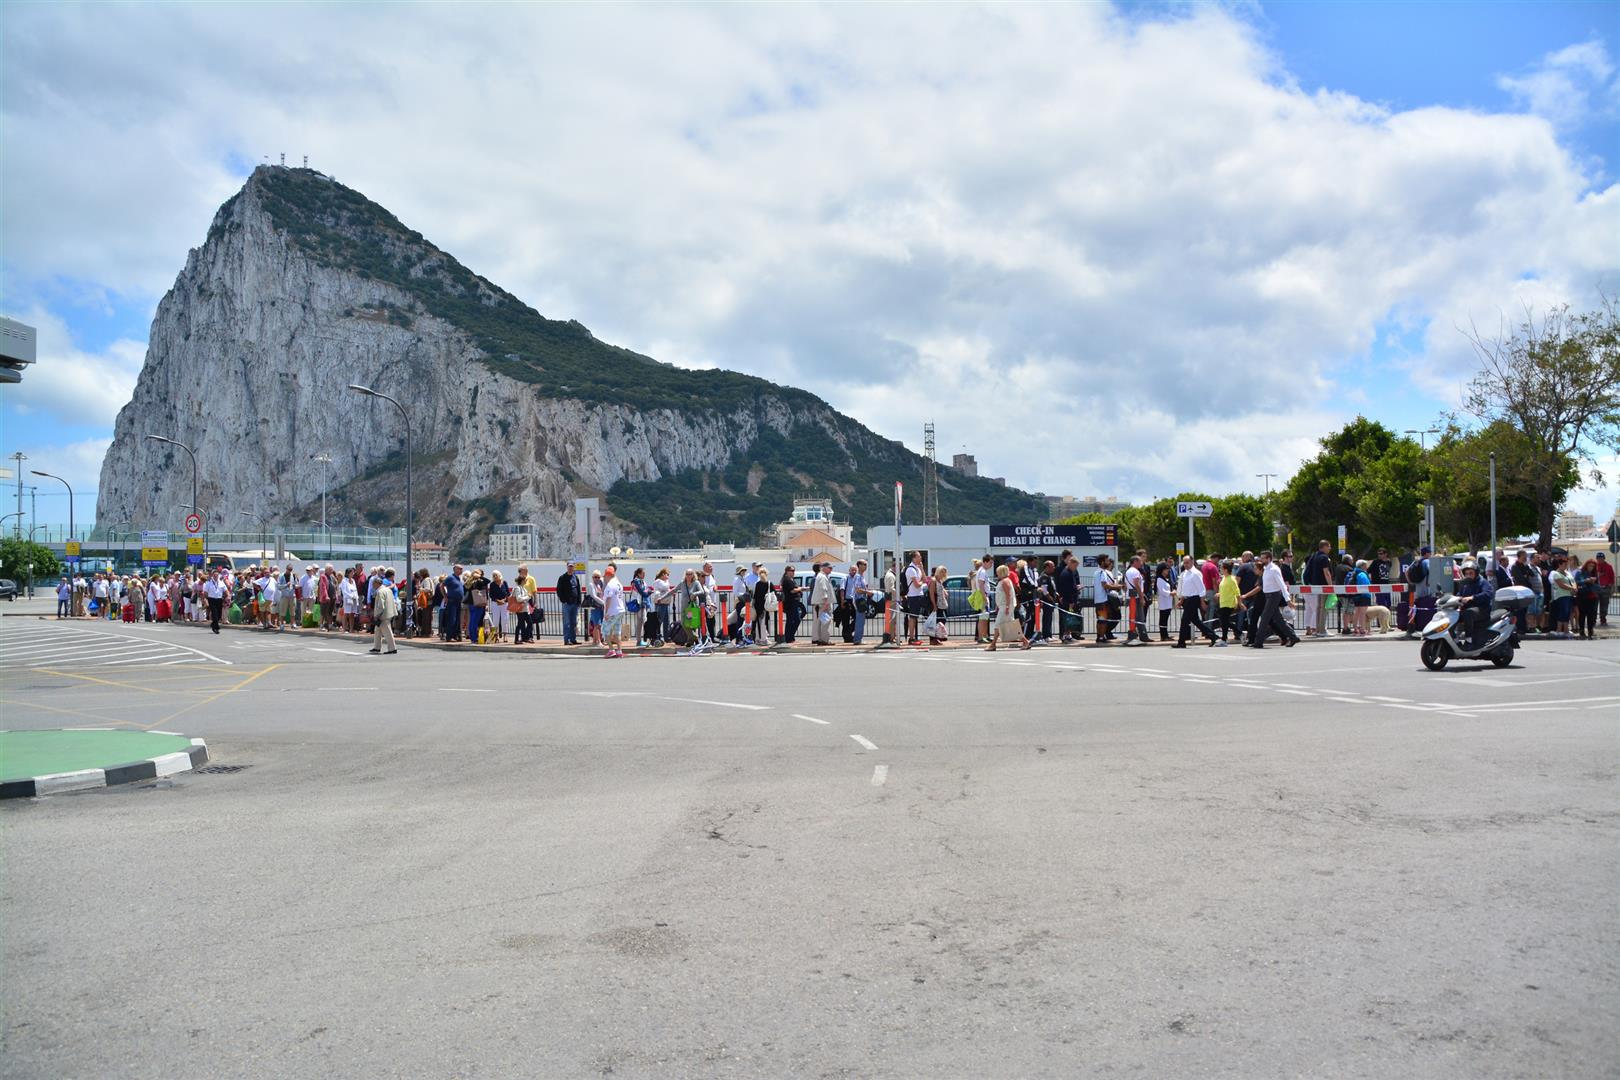 From a few people to an over 120m long mass of people was seen to be created by the enforced delays. As people waited to cross into Spain the area between the Policia Nacional officer and the Customs area at the Spanish side of the border was seen to be clear.